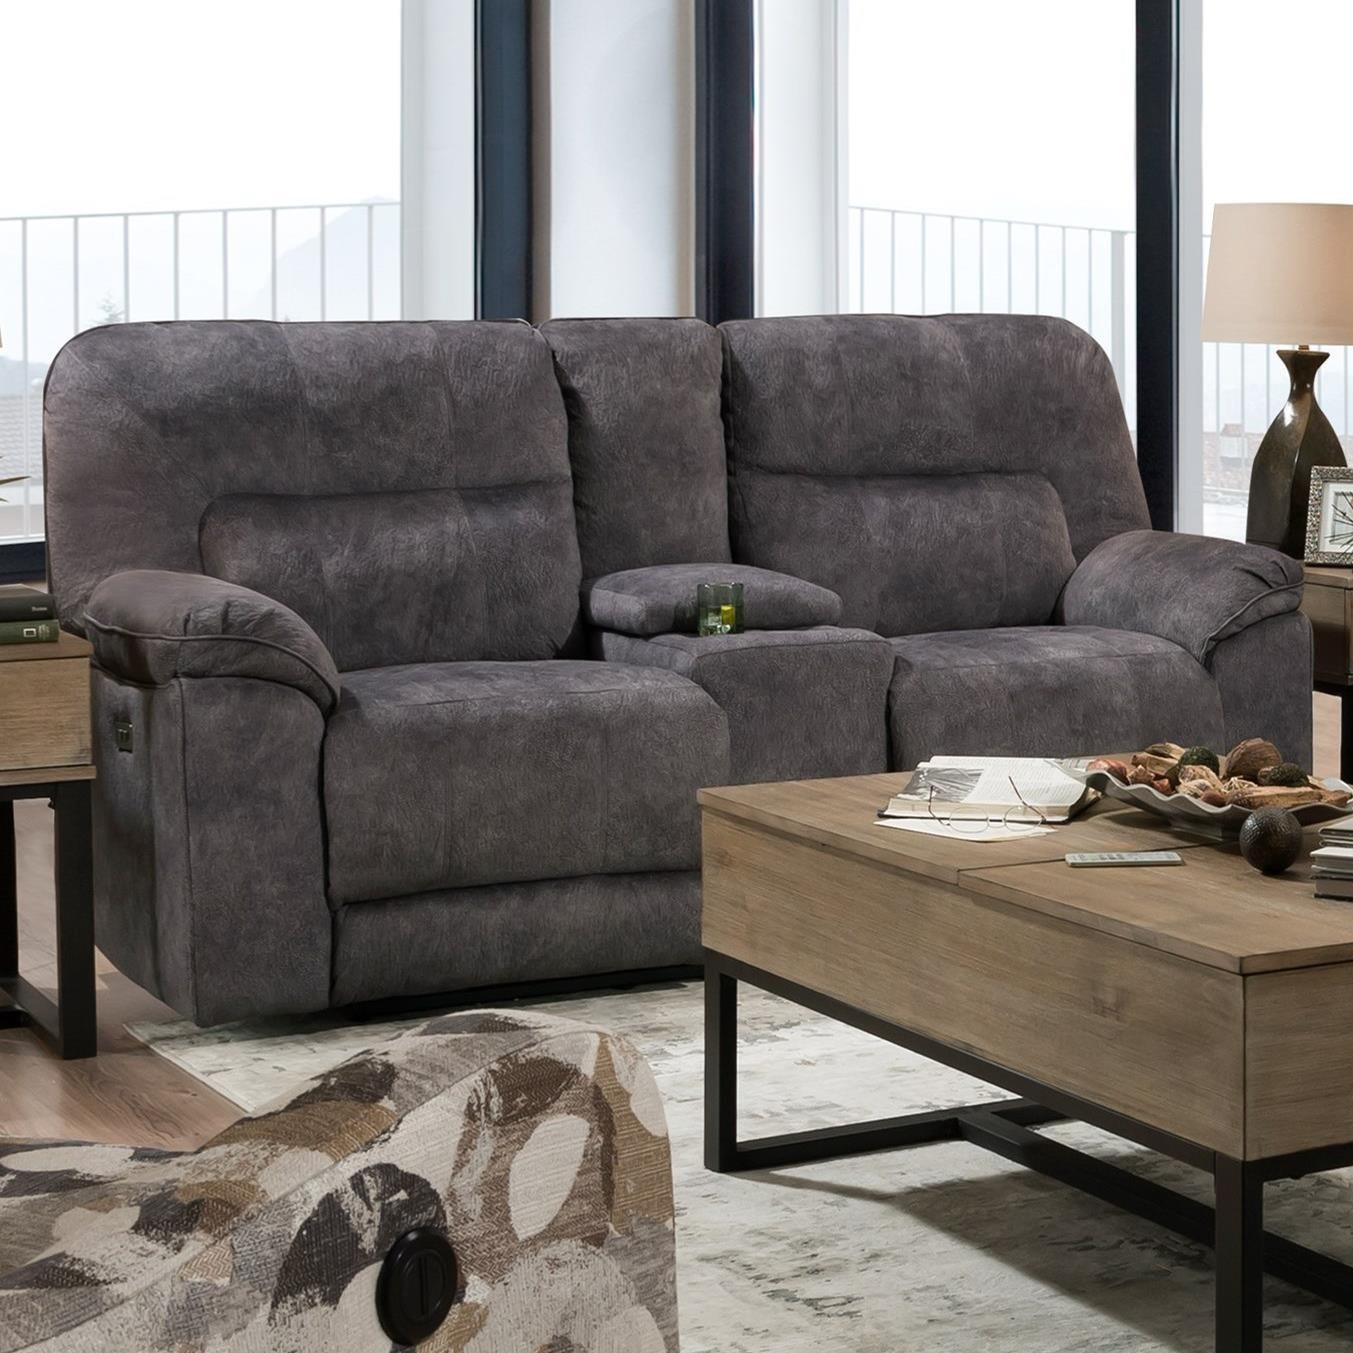 Top Gun Power Reclining Console Sofa w/ Pwr Hdrsts by Southern Motion at Furniture and ApplianceMart